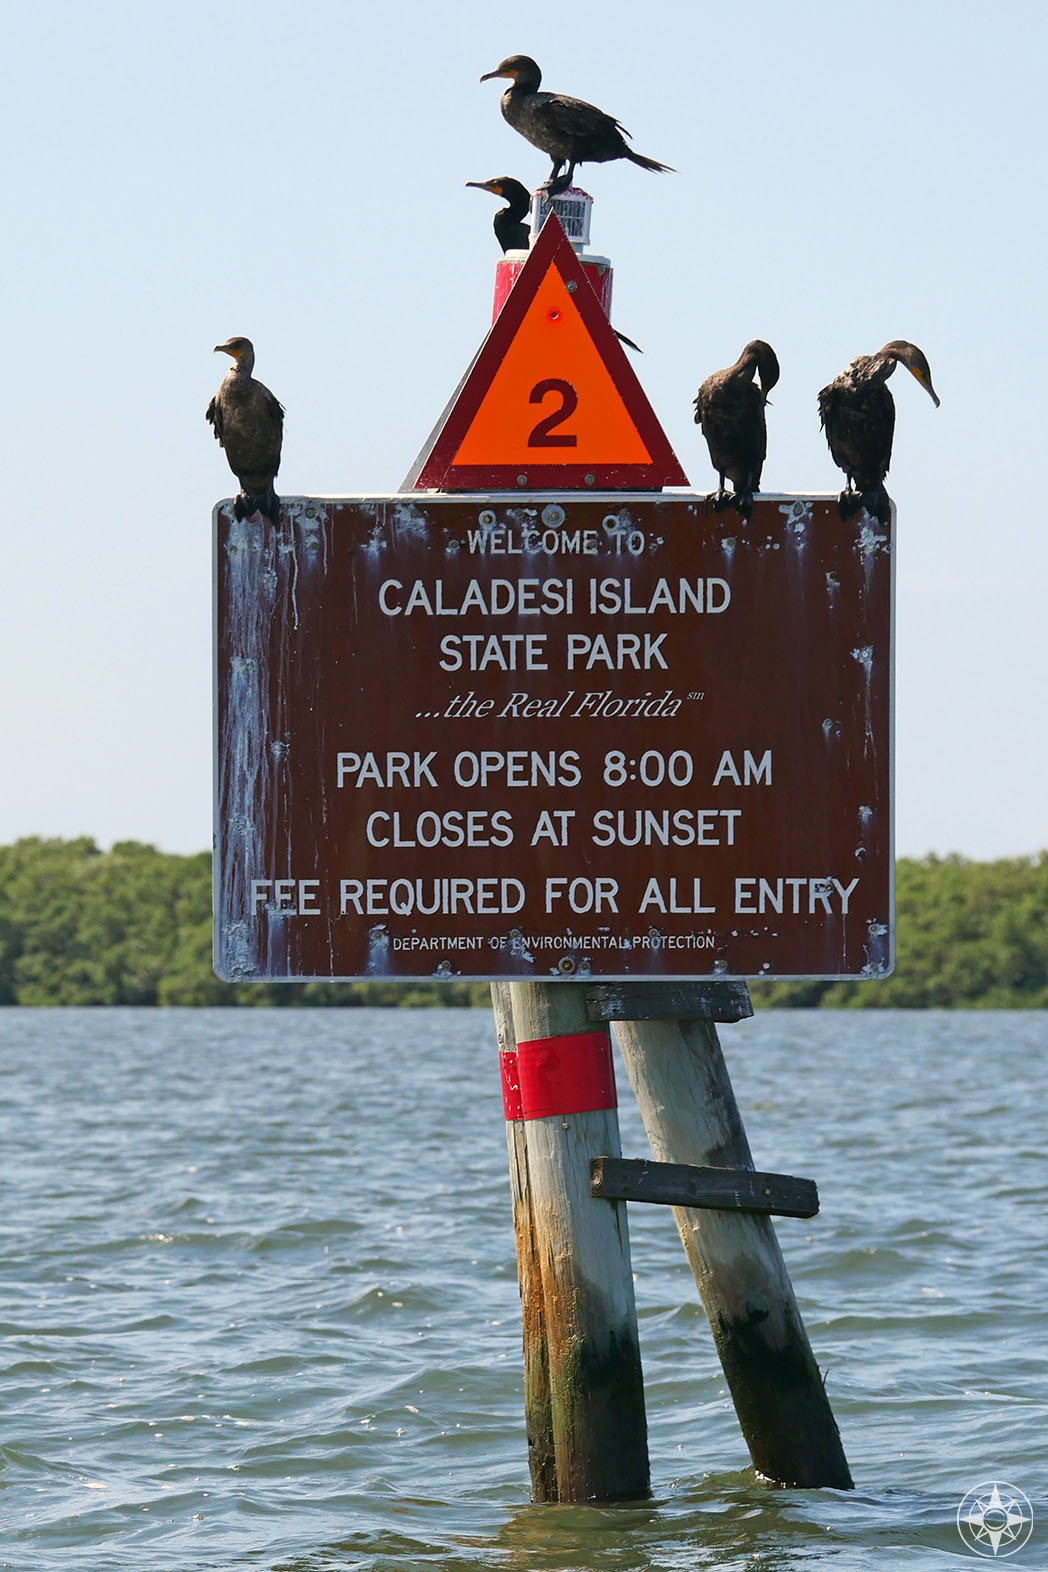 Cormorants on sign at the waterway entrance to Caladesi Island State Park, the real Florida